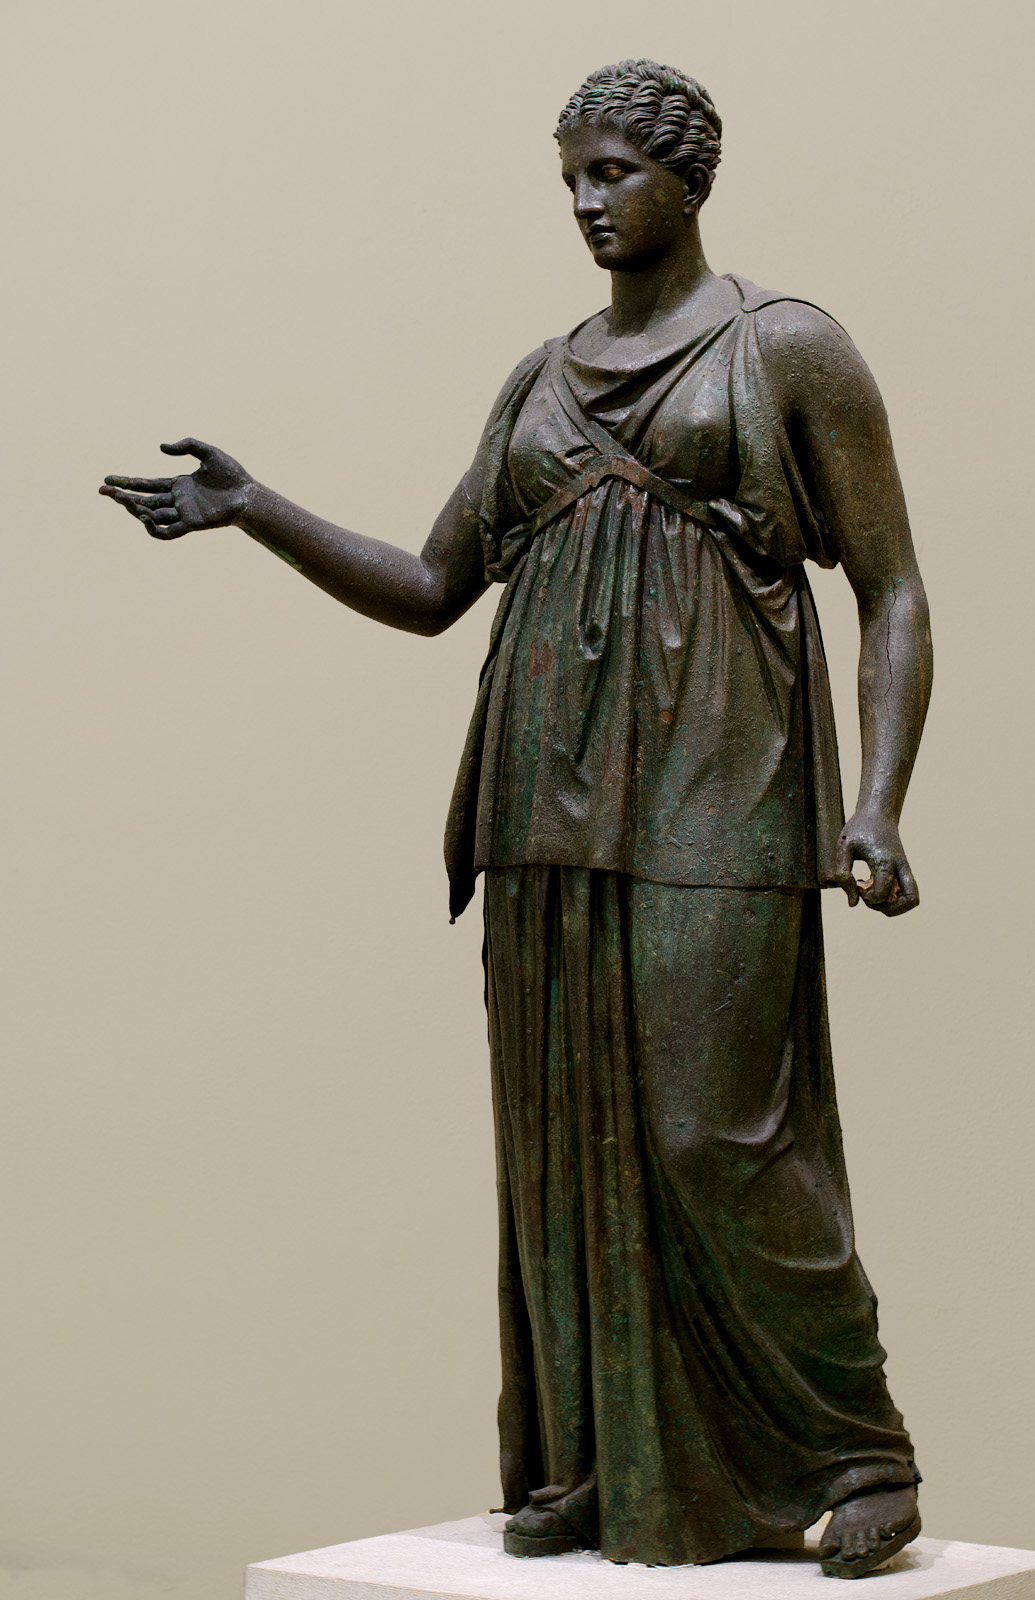 Artemis. Bronze. Mid-4th century BCE. Inv. No. 4647. Athens, Archaeological Museum of Piraeus